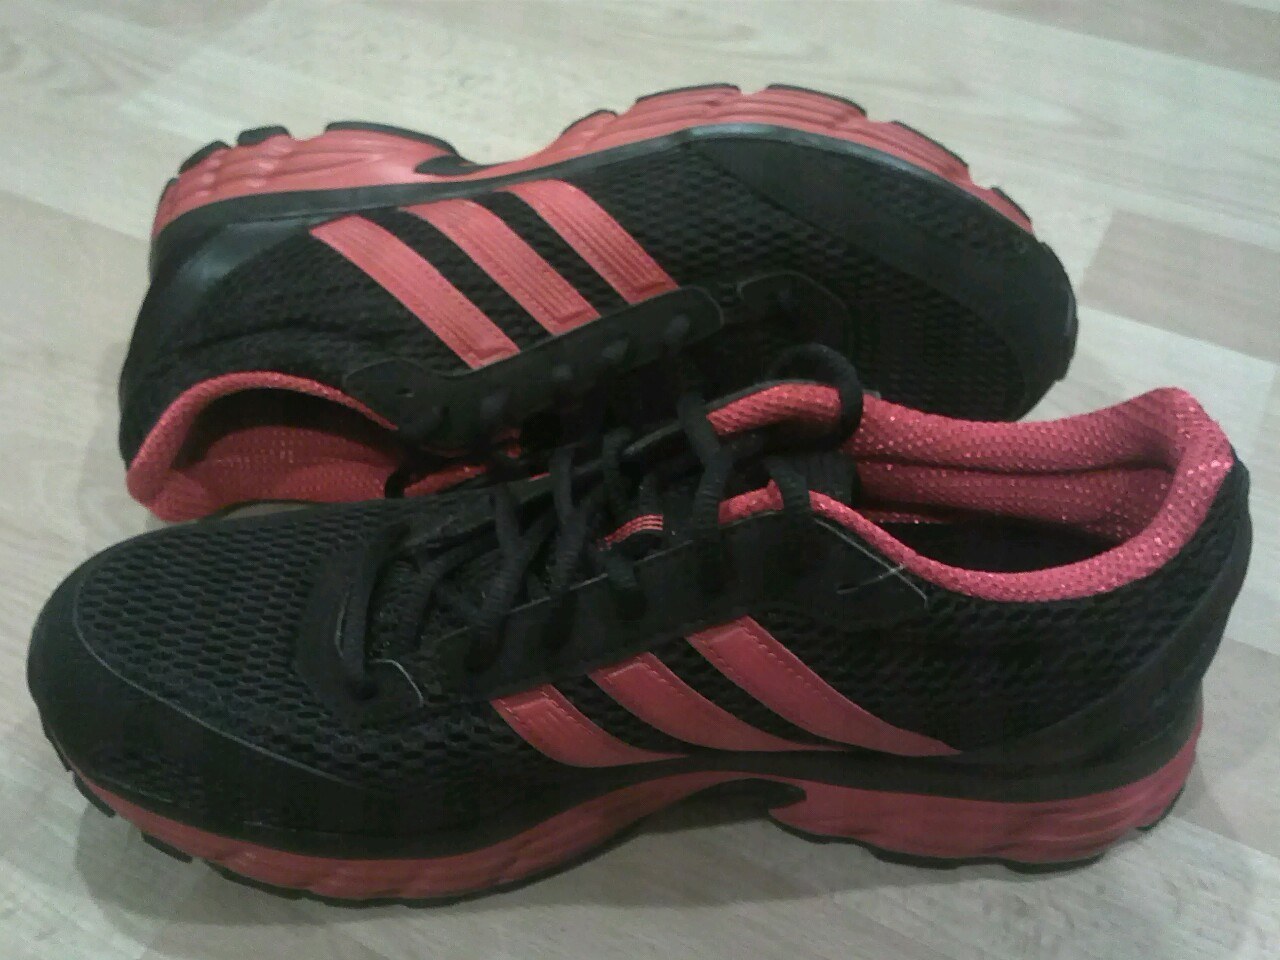 Just got new shoes :) Adidas Vanquish 6 M